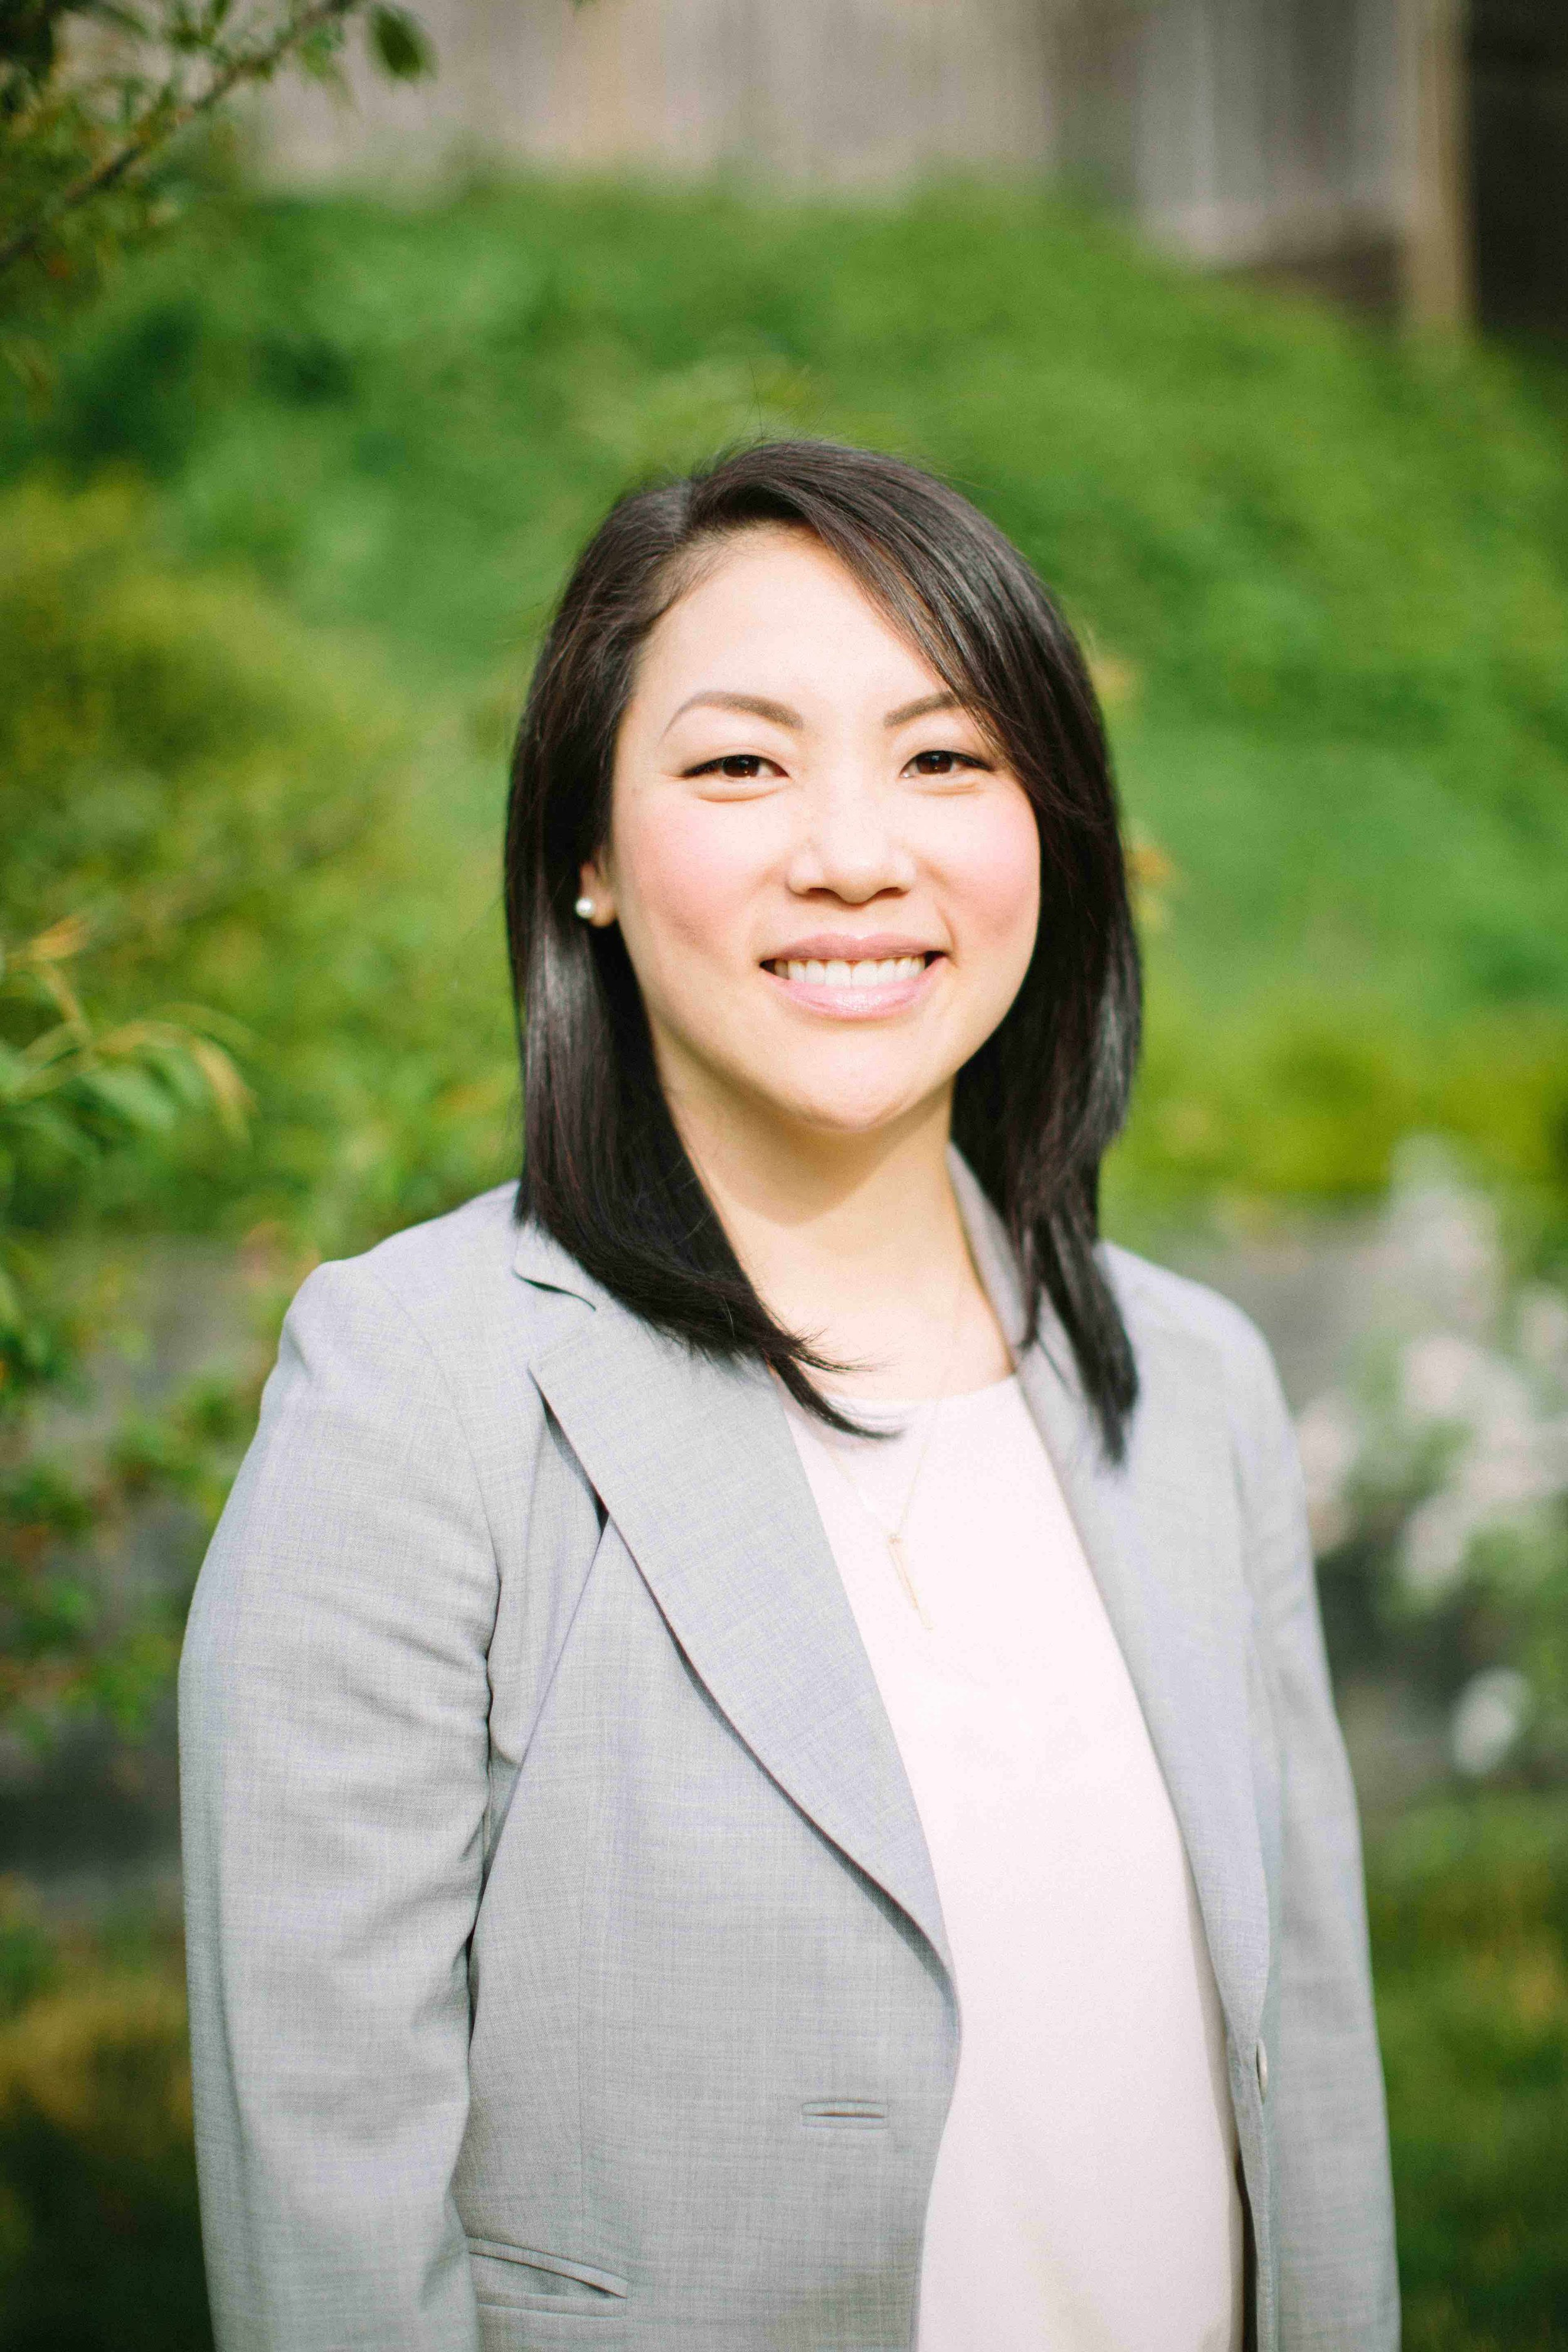 Laura Pak - Associate Pastor   Laura is our part-time operations pastor. She oversees all aspects of communications, operations, and small group administration. She also supports us in all things education.